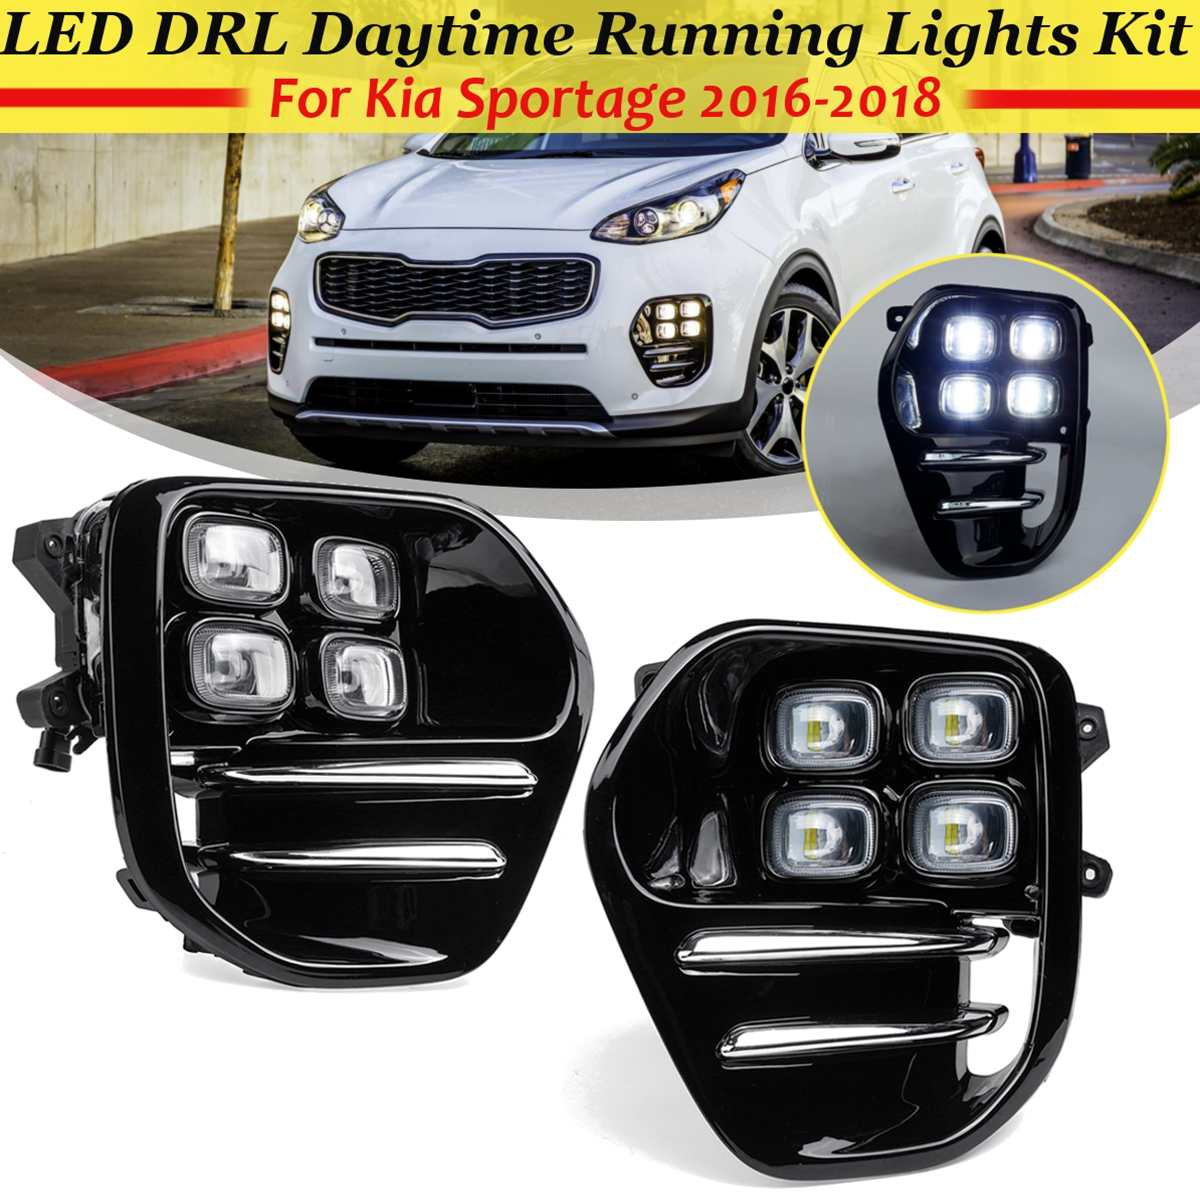 Pair Car LED DRL Daytime Running Light With Cove Grill For Kia Sportage QL 2016 2017 2018 Auto White Driving DRL Light StylingPair Car LED DRL Daytime Running Light With Cove Grill For Kia Sportage QL 2016 2017 2018 Auto White Driving DRL Light Styling